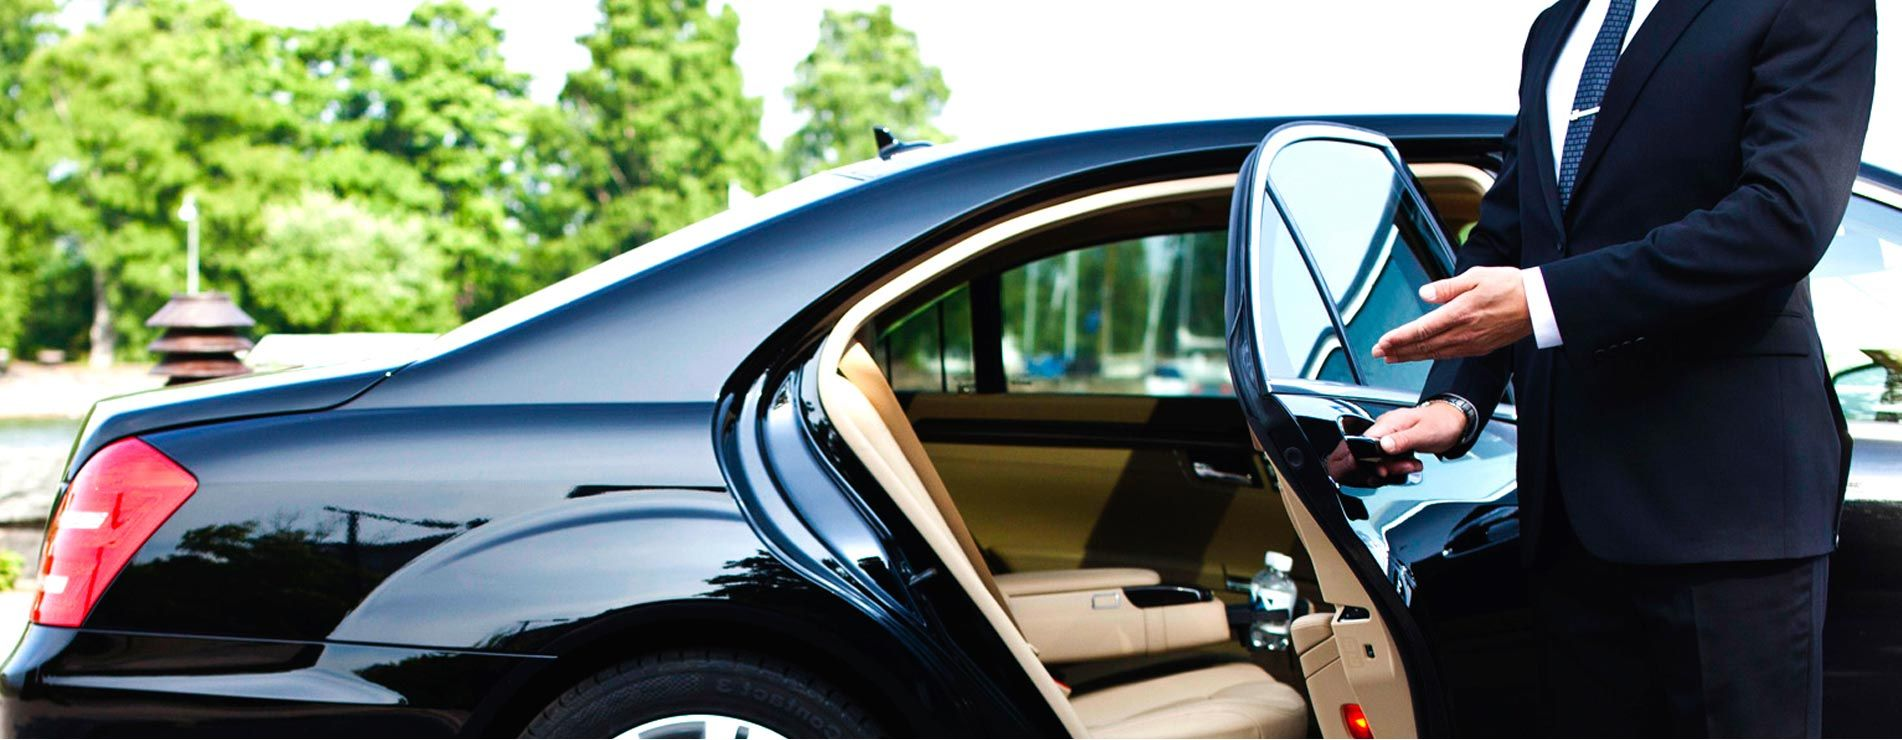 Memphis Wedding Car is a Limo Transportation Agency and